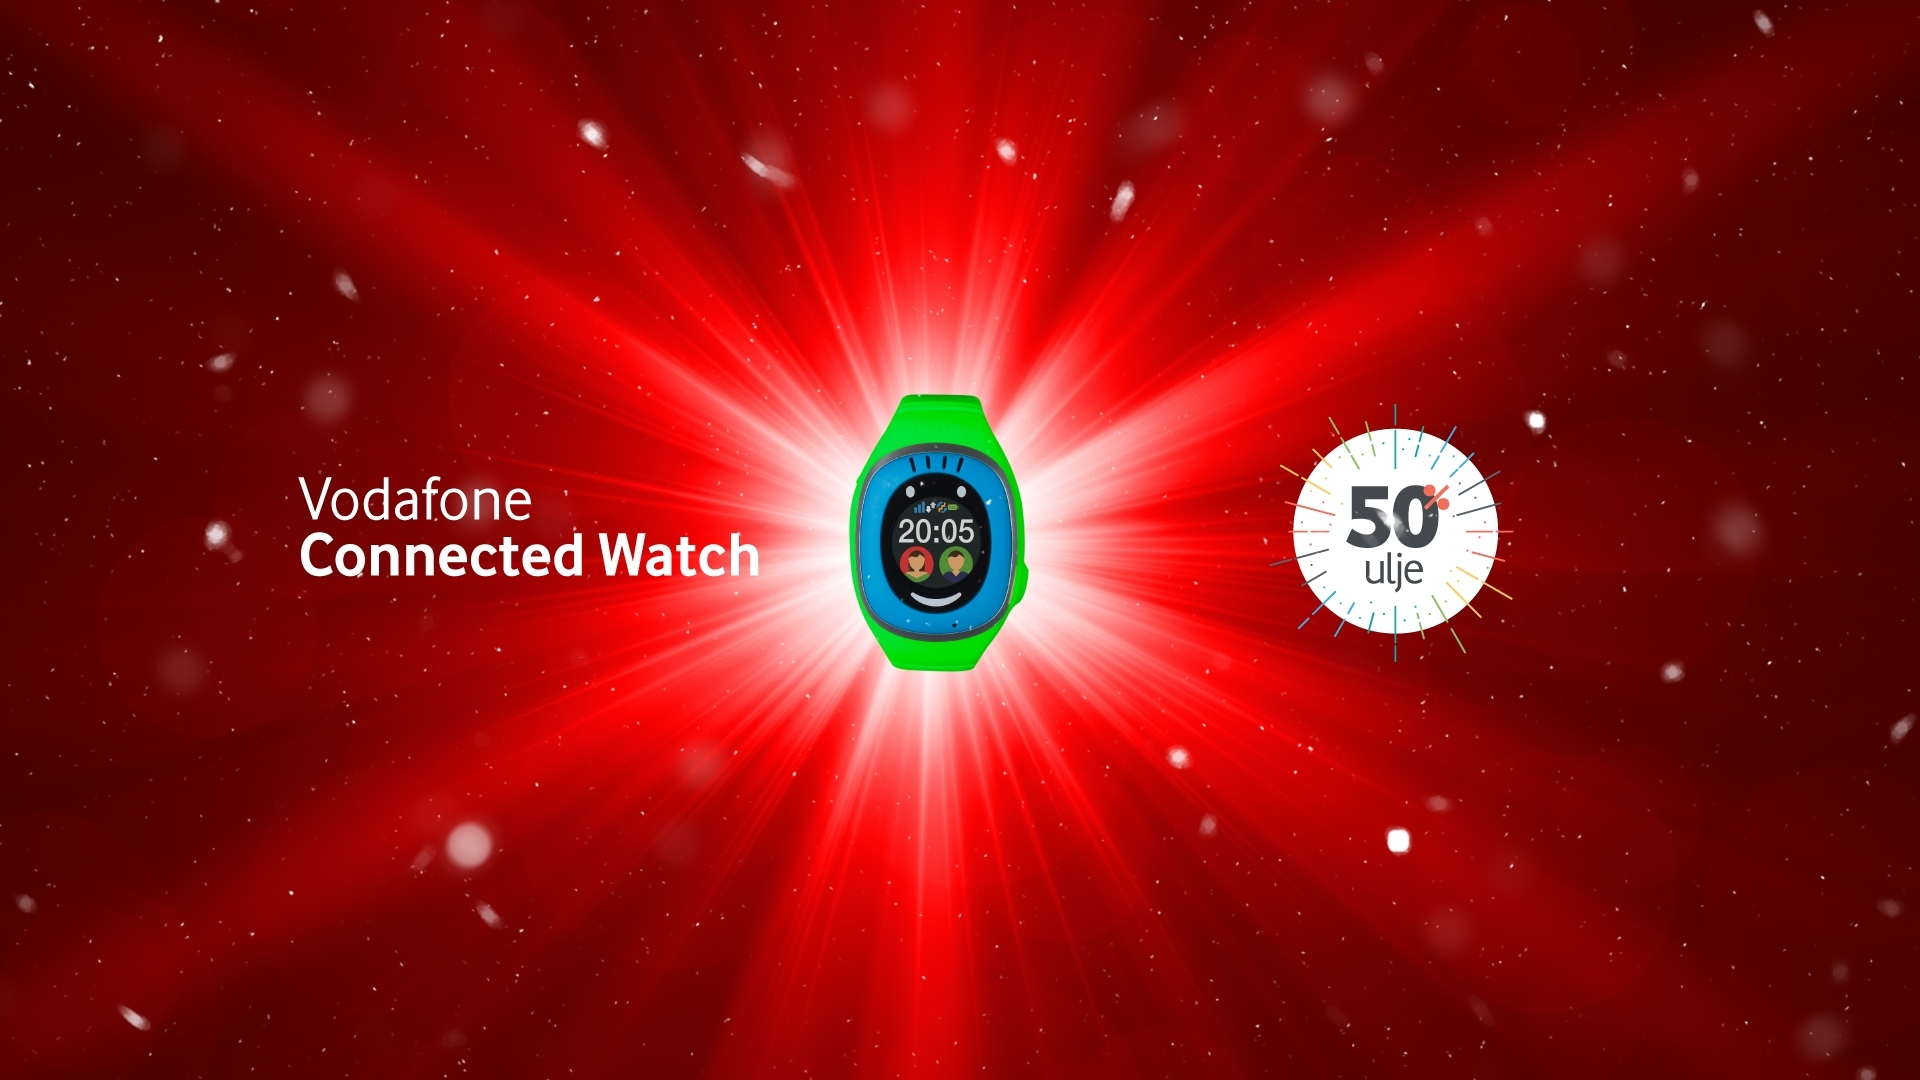 Vodafone Connected Watch